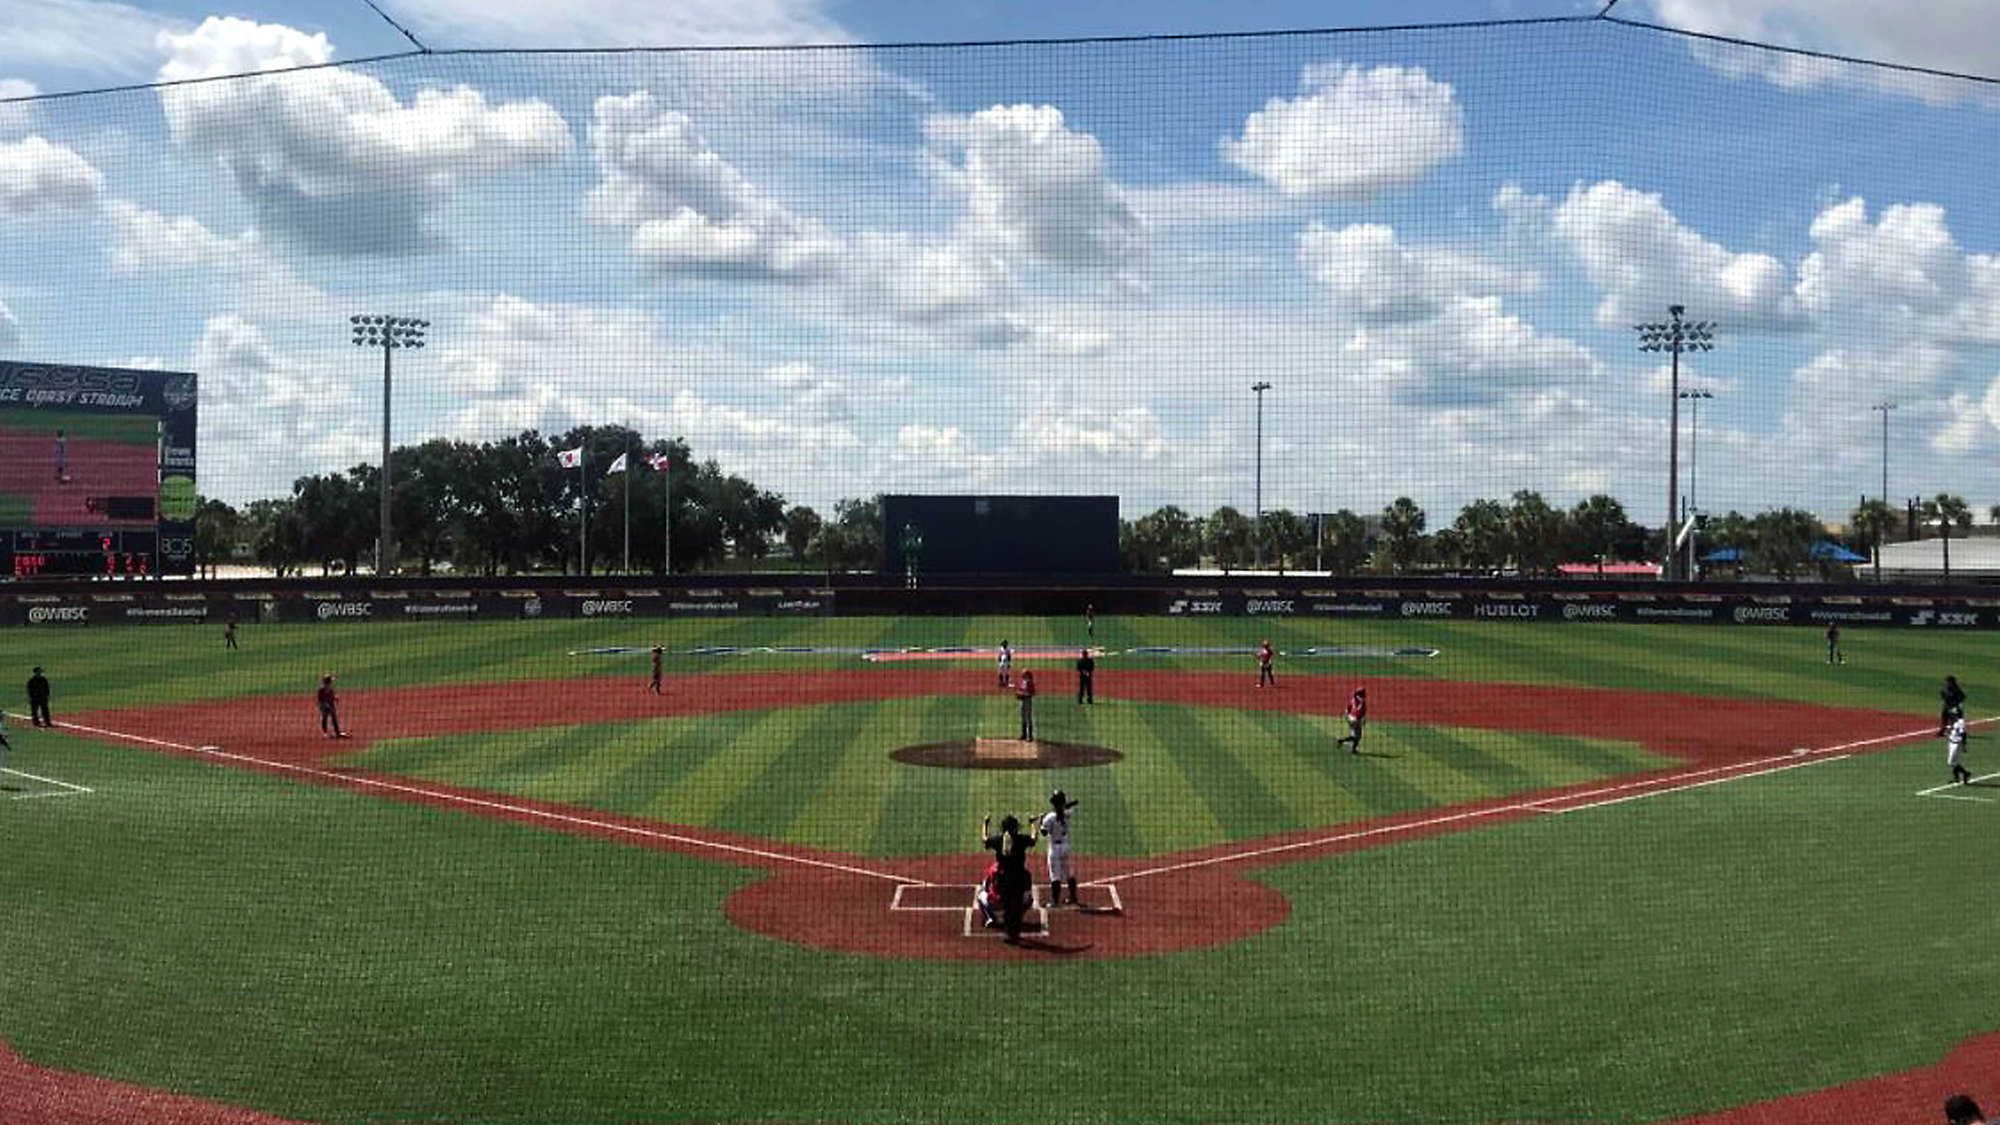 0f5811f042e8fb Players from around the world are gathering in Brevard County for the  Women's Baseball World Cup